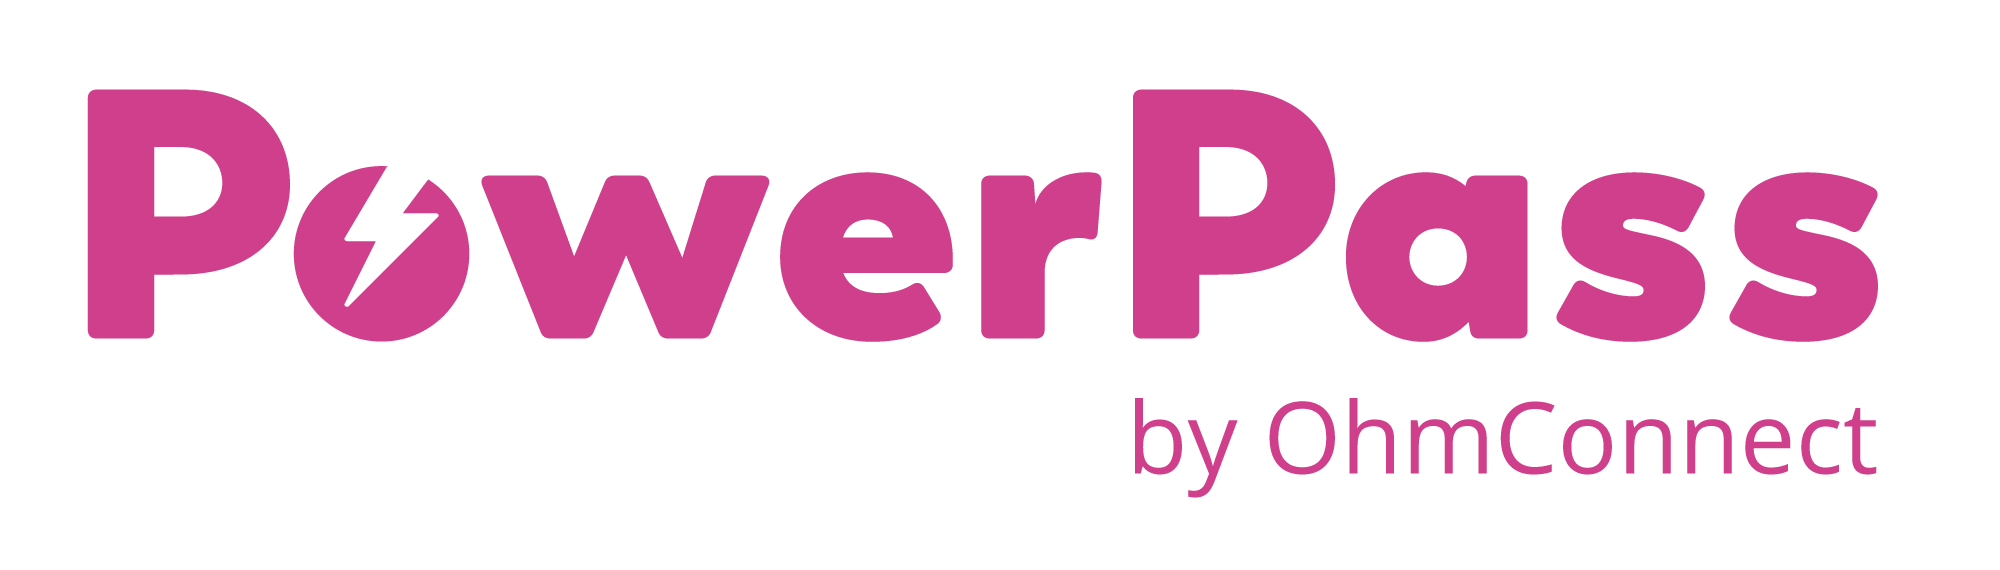 power pass logo